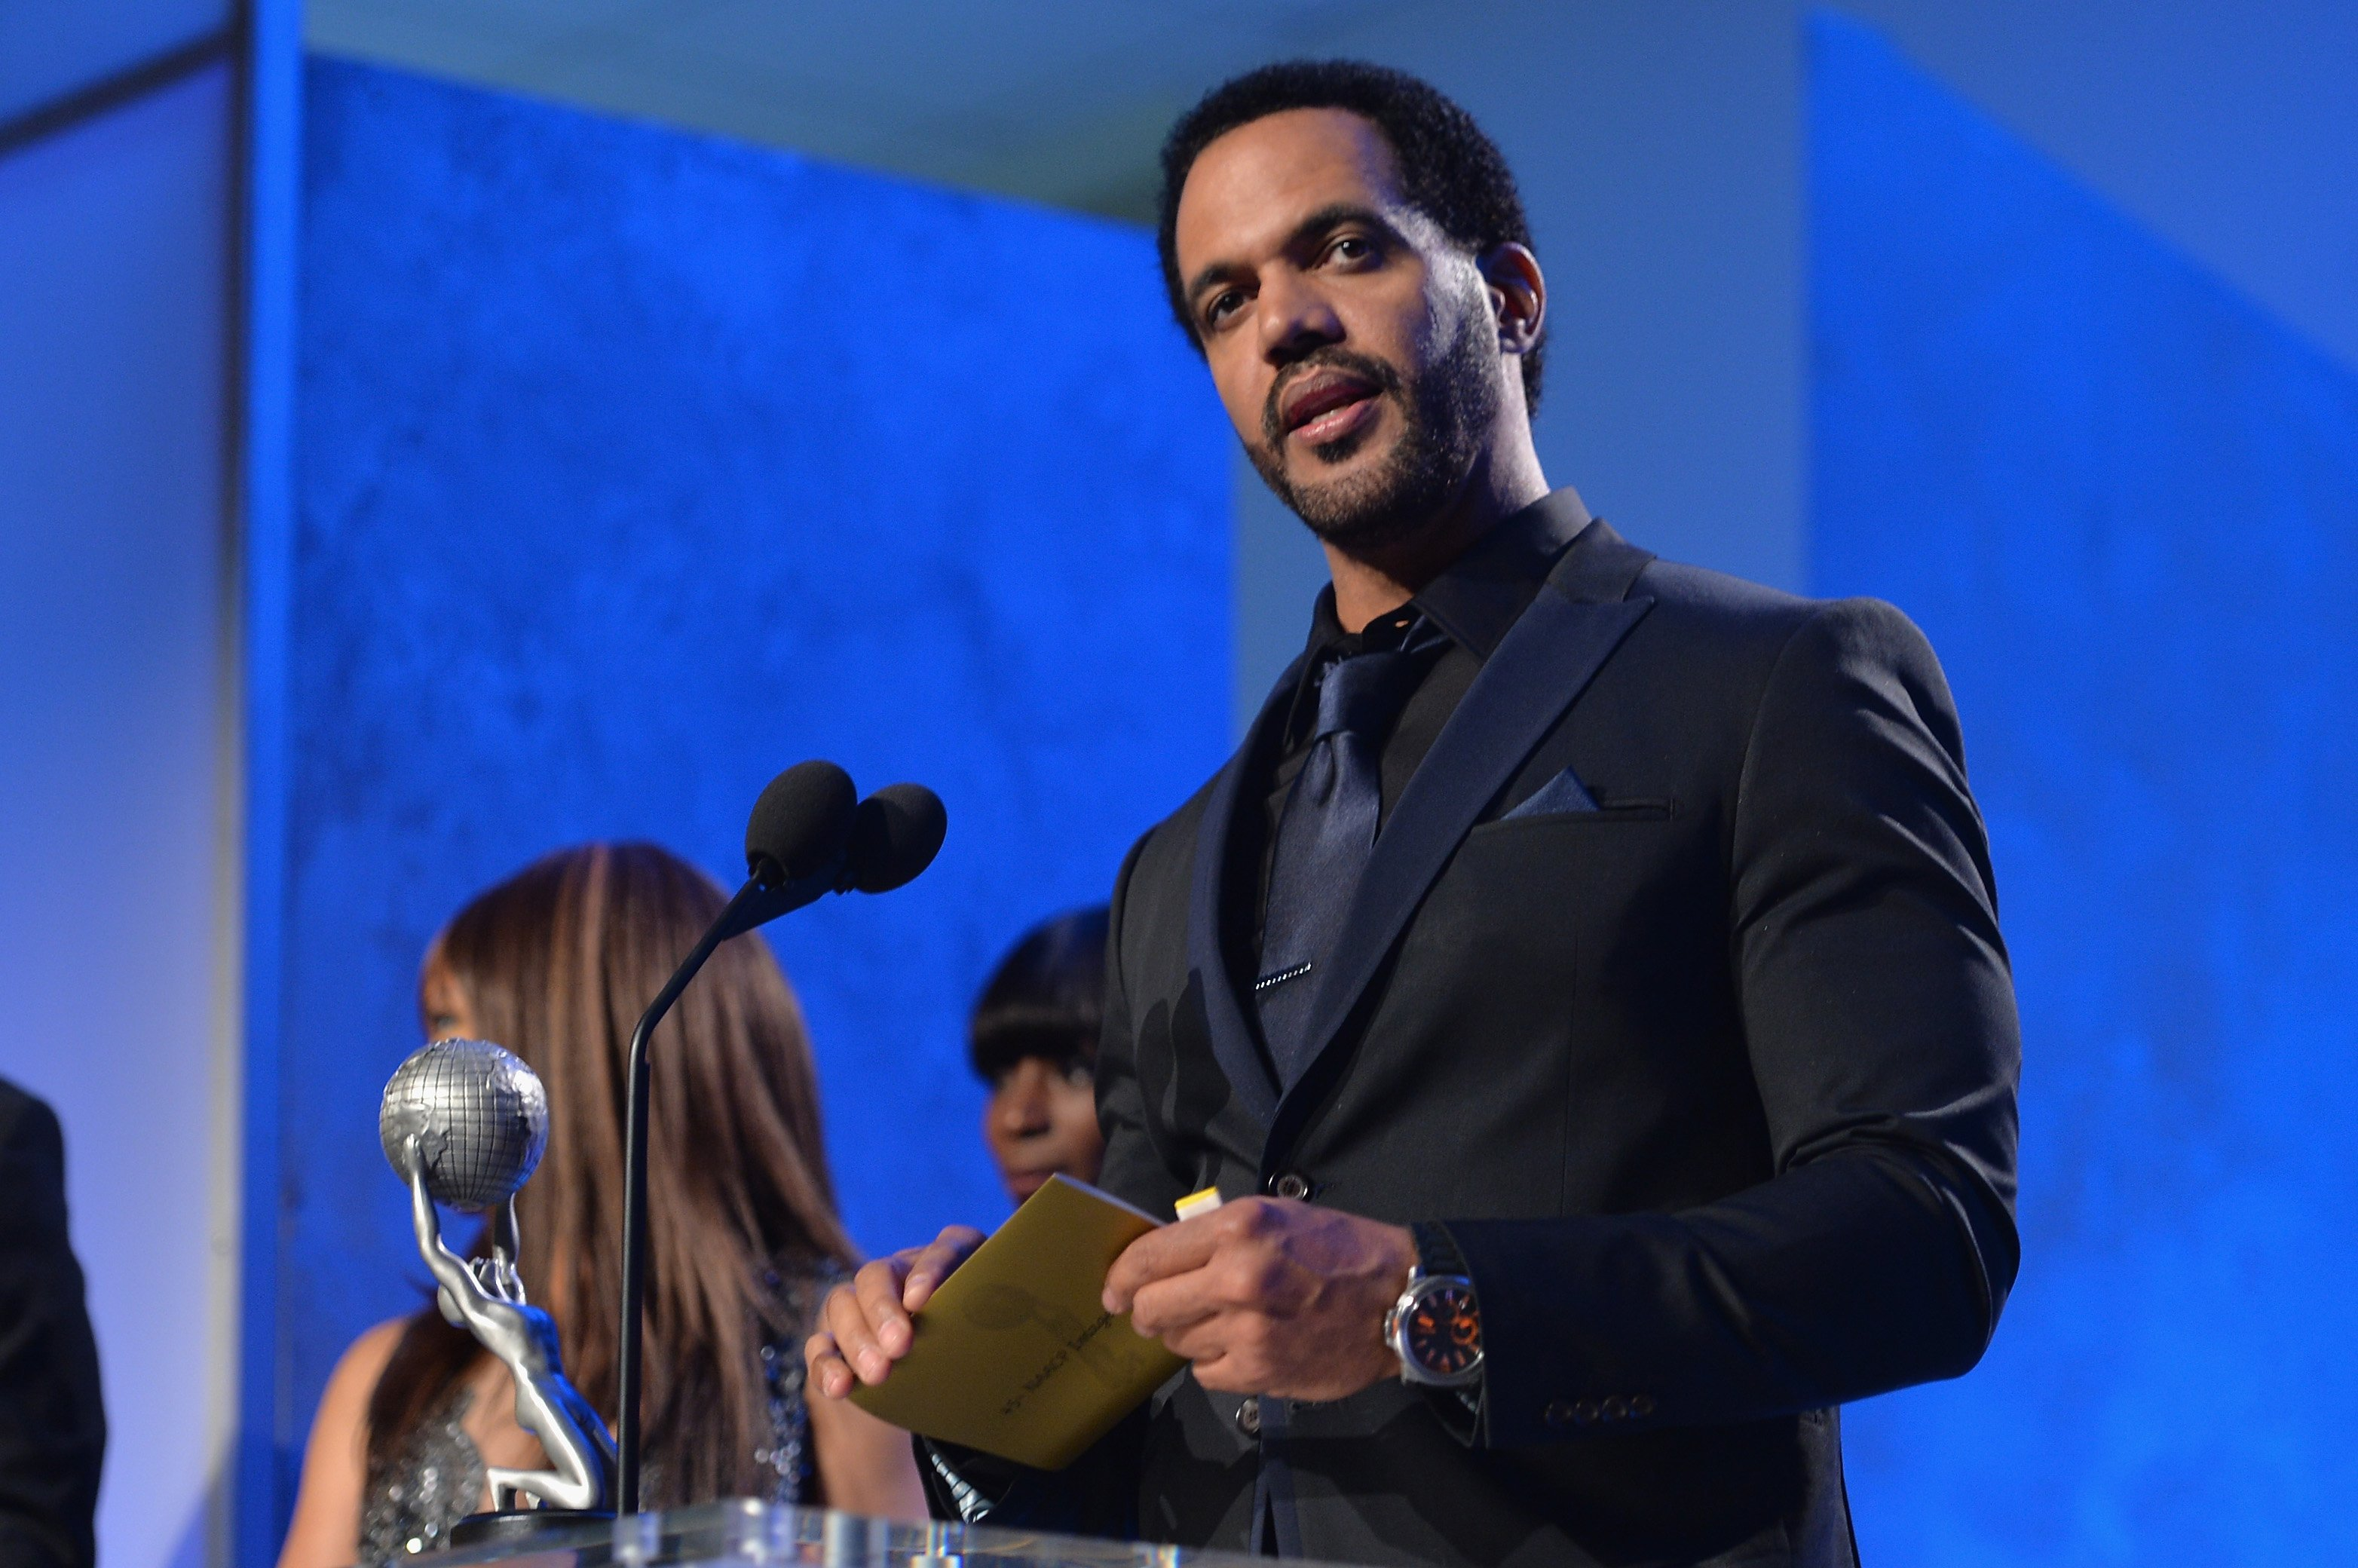 Kristoff St. John attends the 45th NAACP Awards Non-Televised Awards Ceremony at the Pasadena Civic Auditorium on February 21, 2014. | Photo: GettyImages